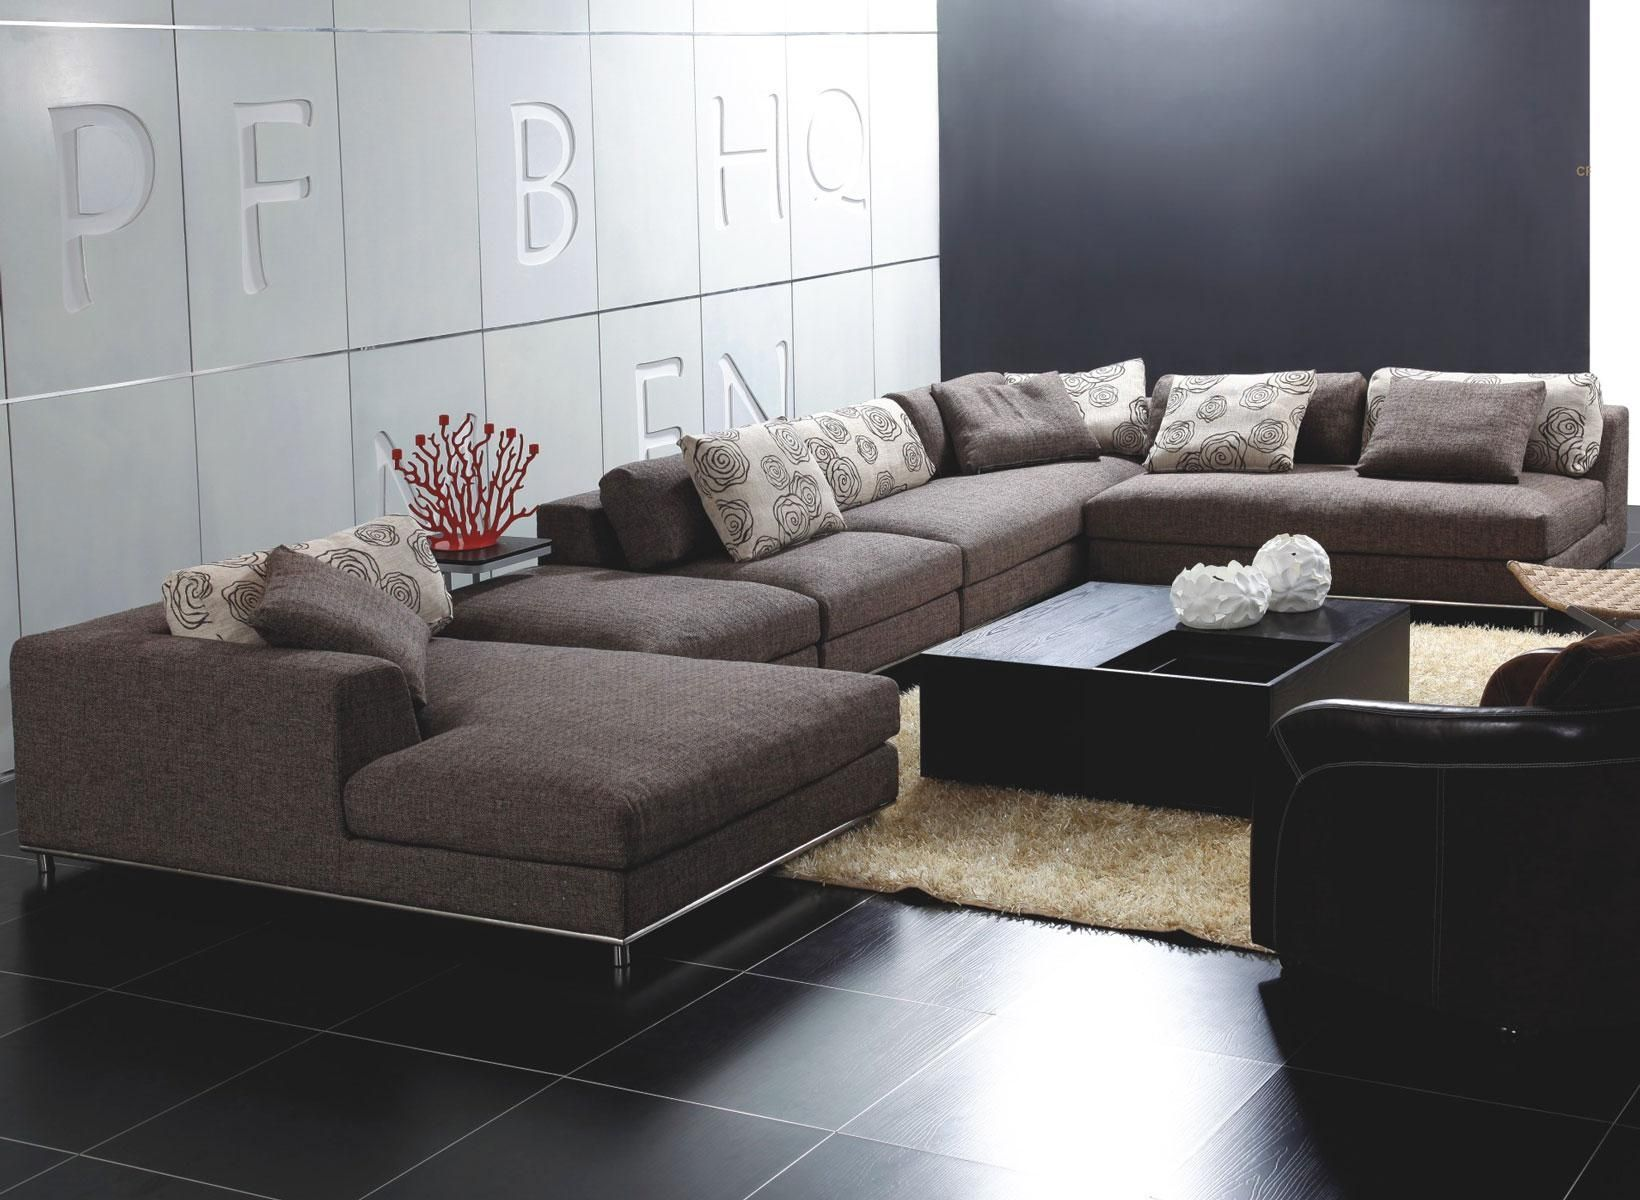 Customized Modern Reclining Sectional Sofas In 2020 Modern Sofa